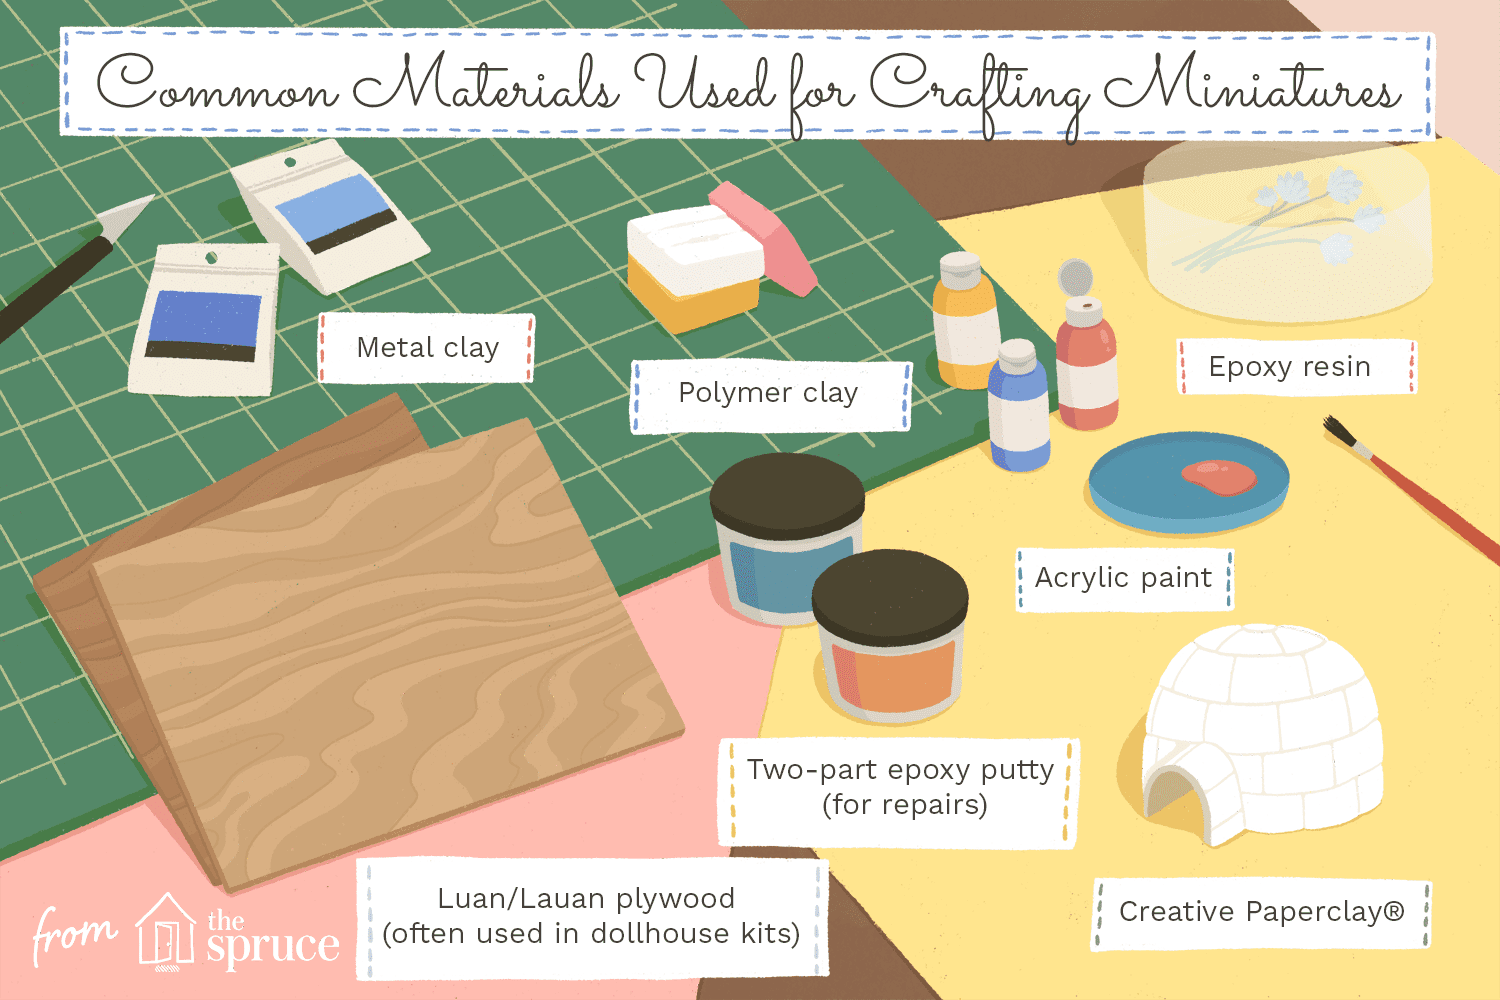 Illustration of common materials used for making miniatures